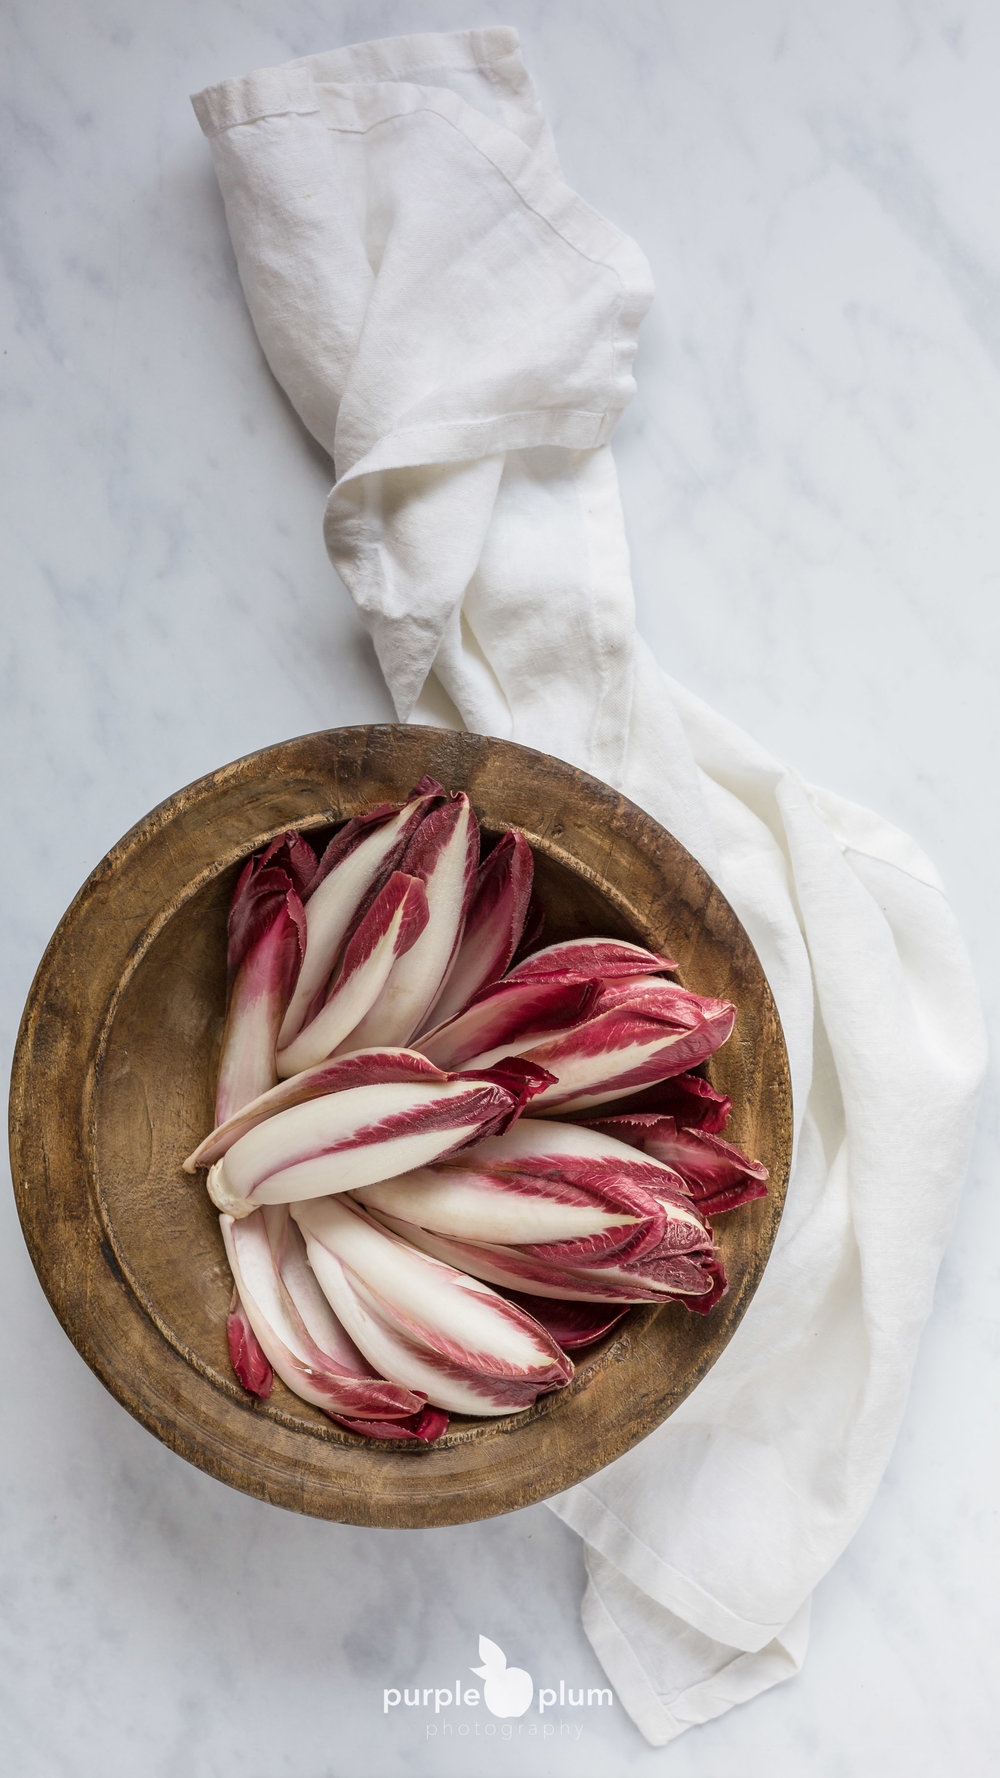 Red Chicory is extremely photogenic!